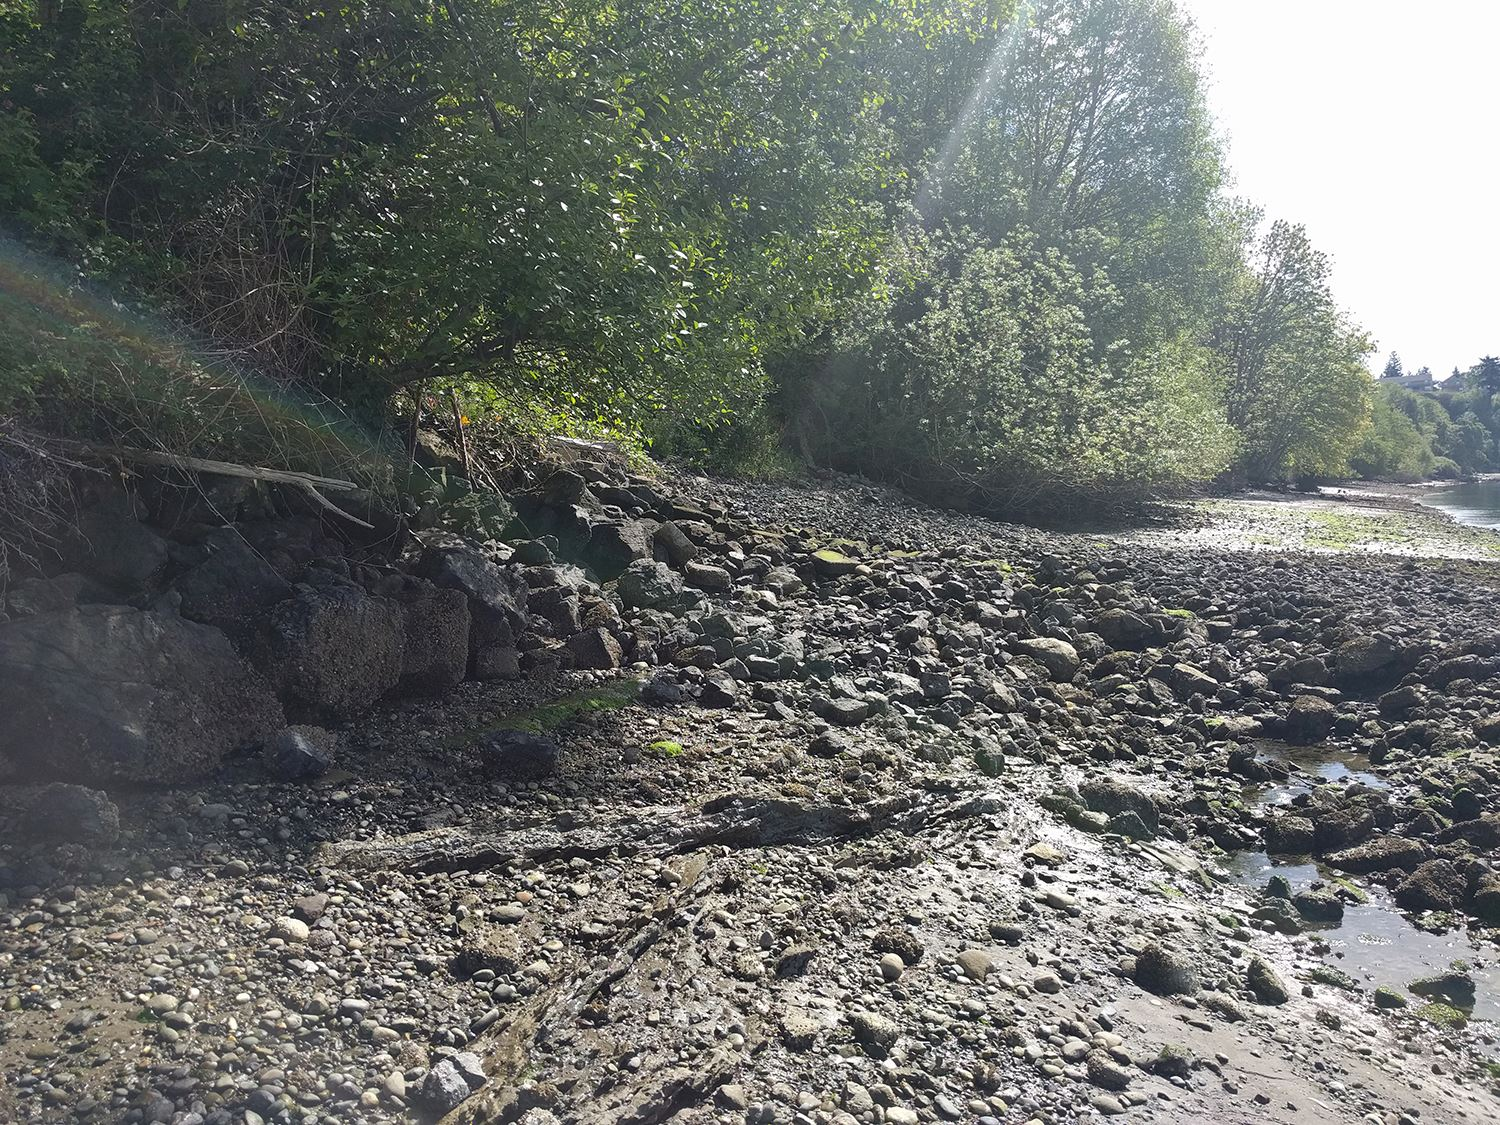 East Park Stormwater Outfall